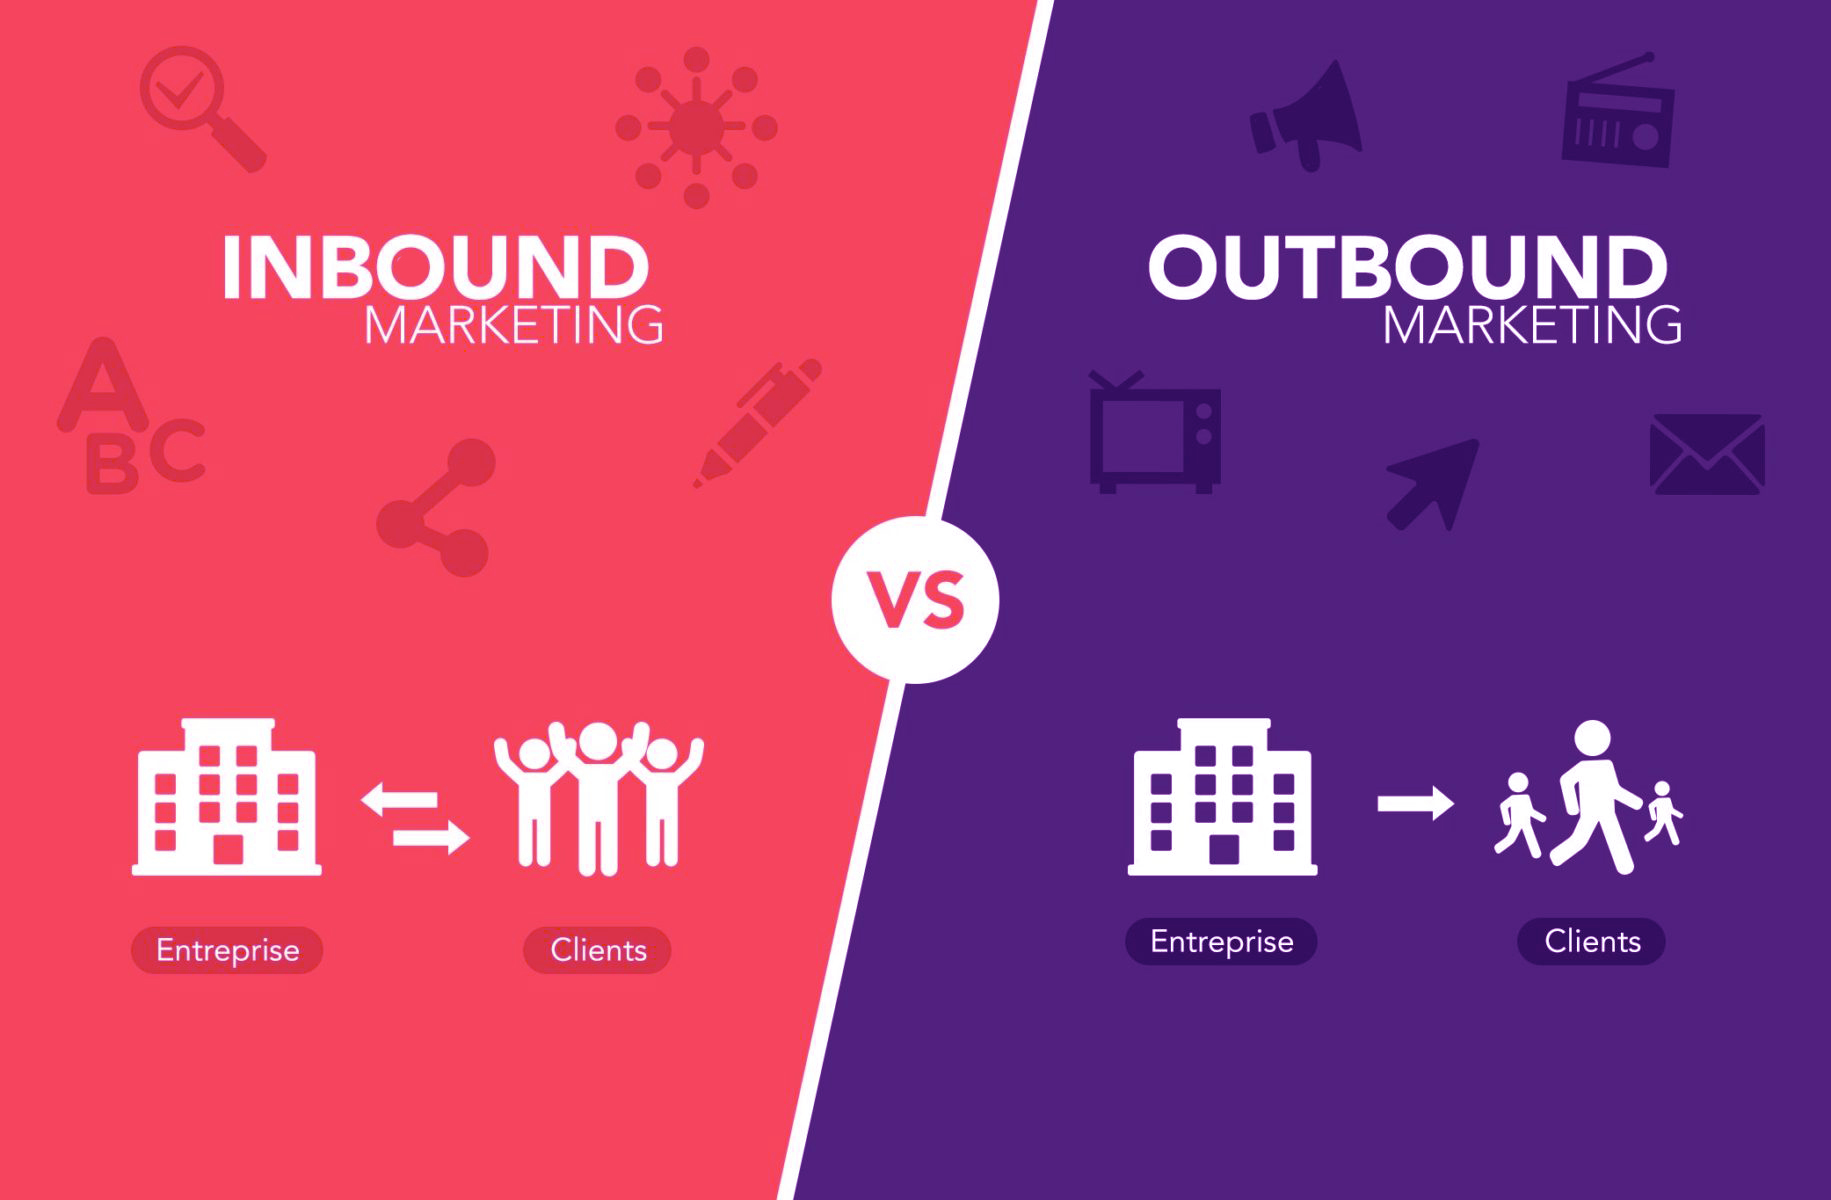 Inbound Marketing e Outbound Marketing qual a melhor estratégia?